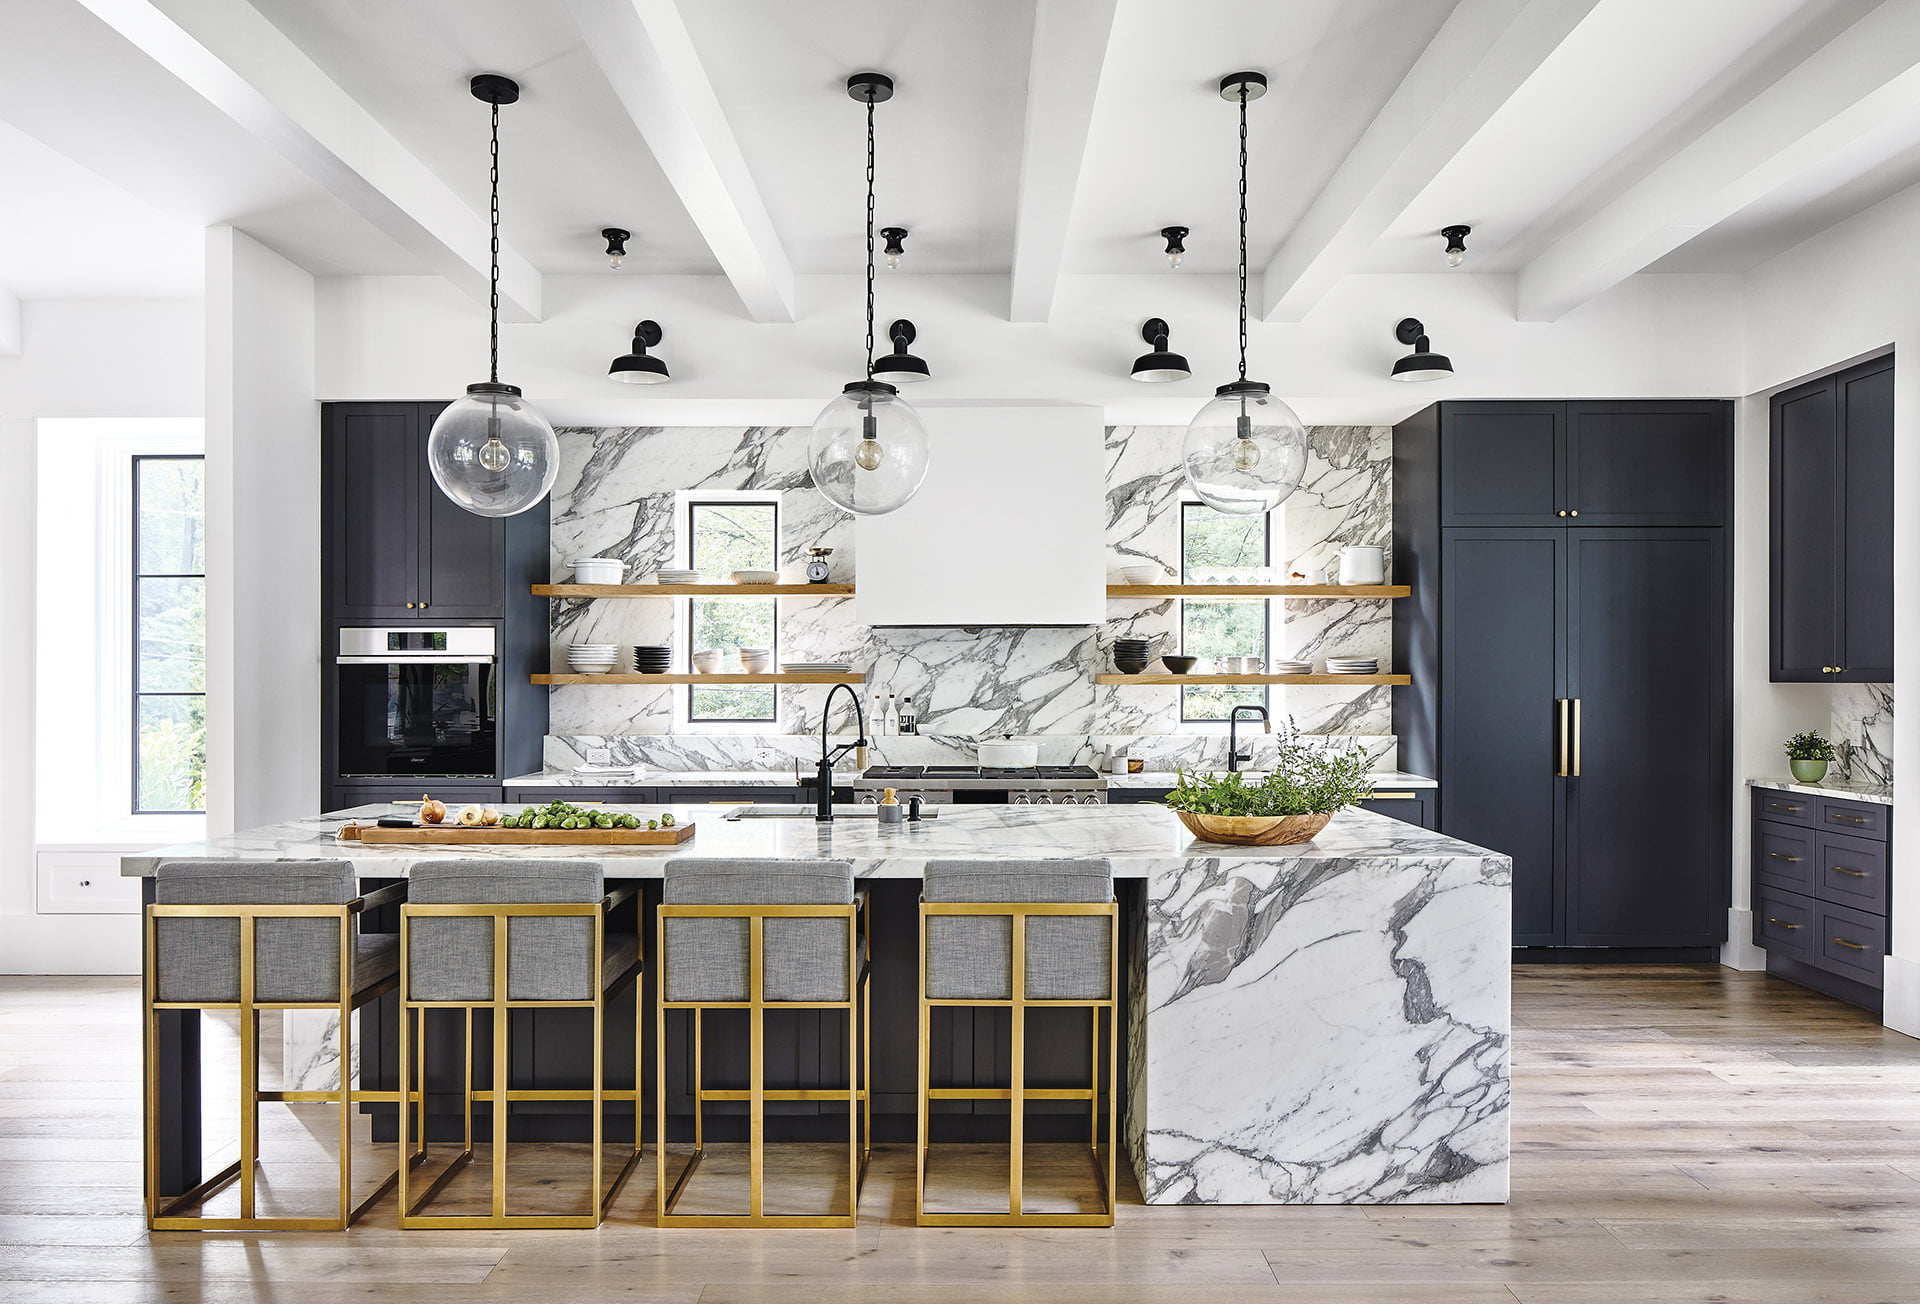 Calacatta Vagli marble surfaces with globe pendants above the island.